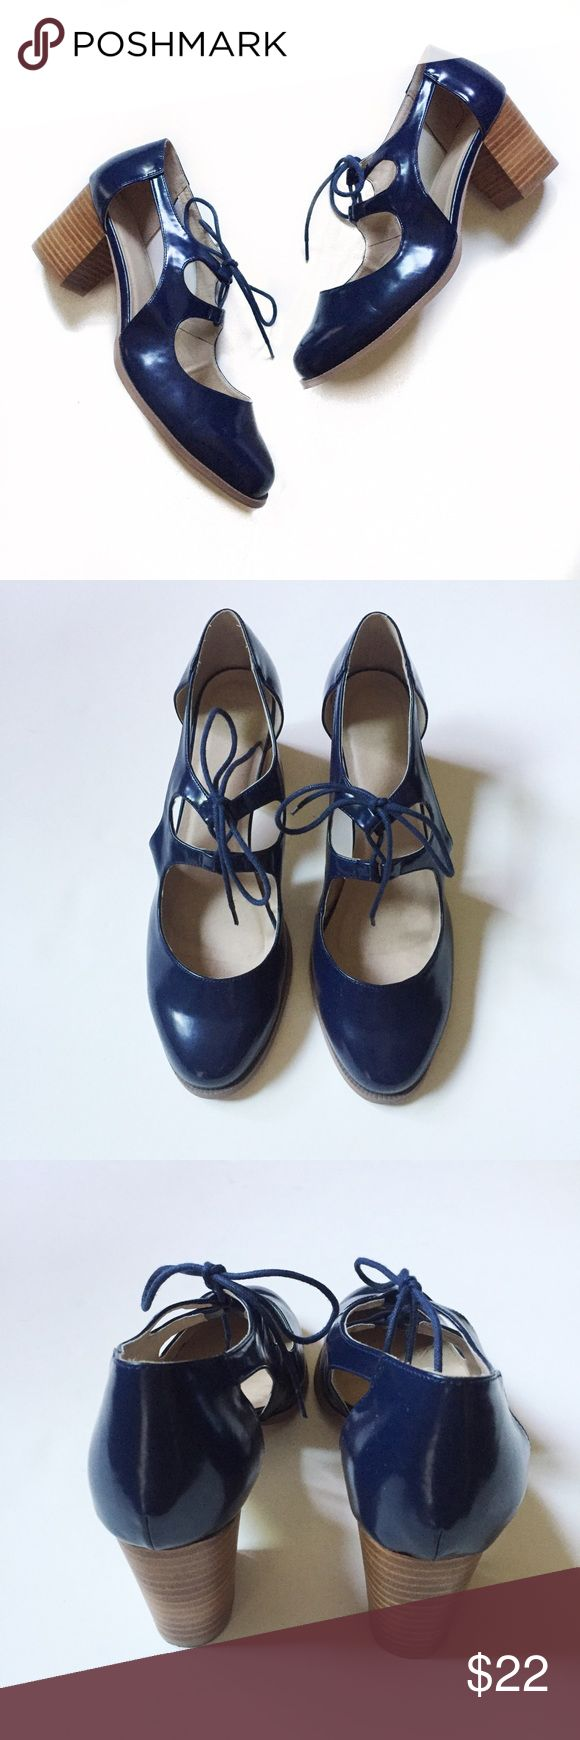 """• asos cut out patent block heels • in great condition. no major signs of wear.   material is patent. color is blue/navy.   heel height is just under 3"""". Asos Shoes Heels"""